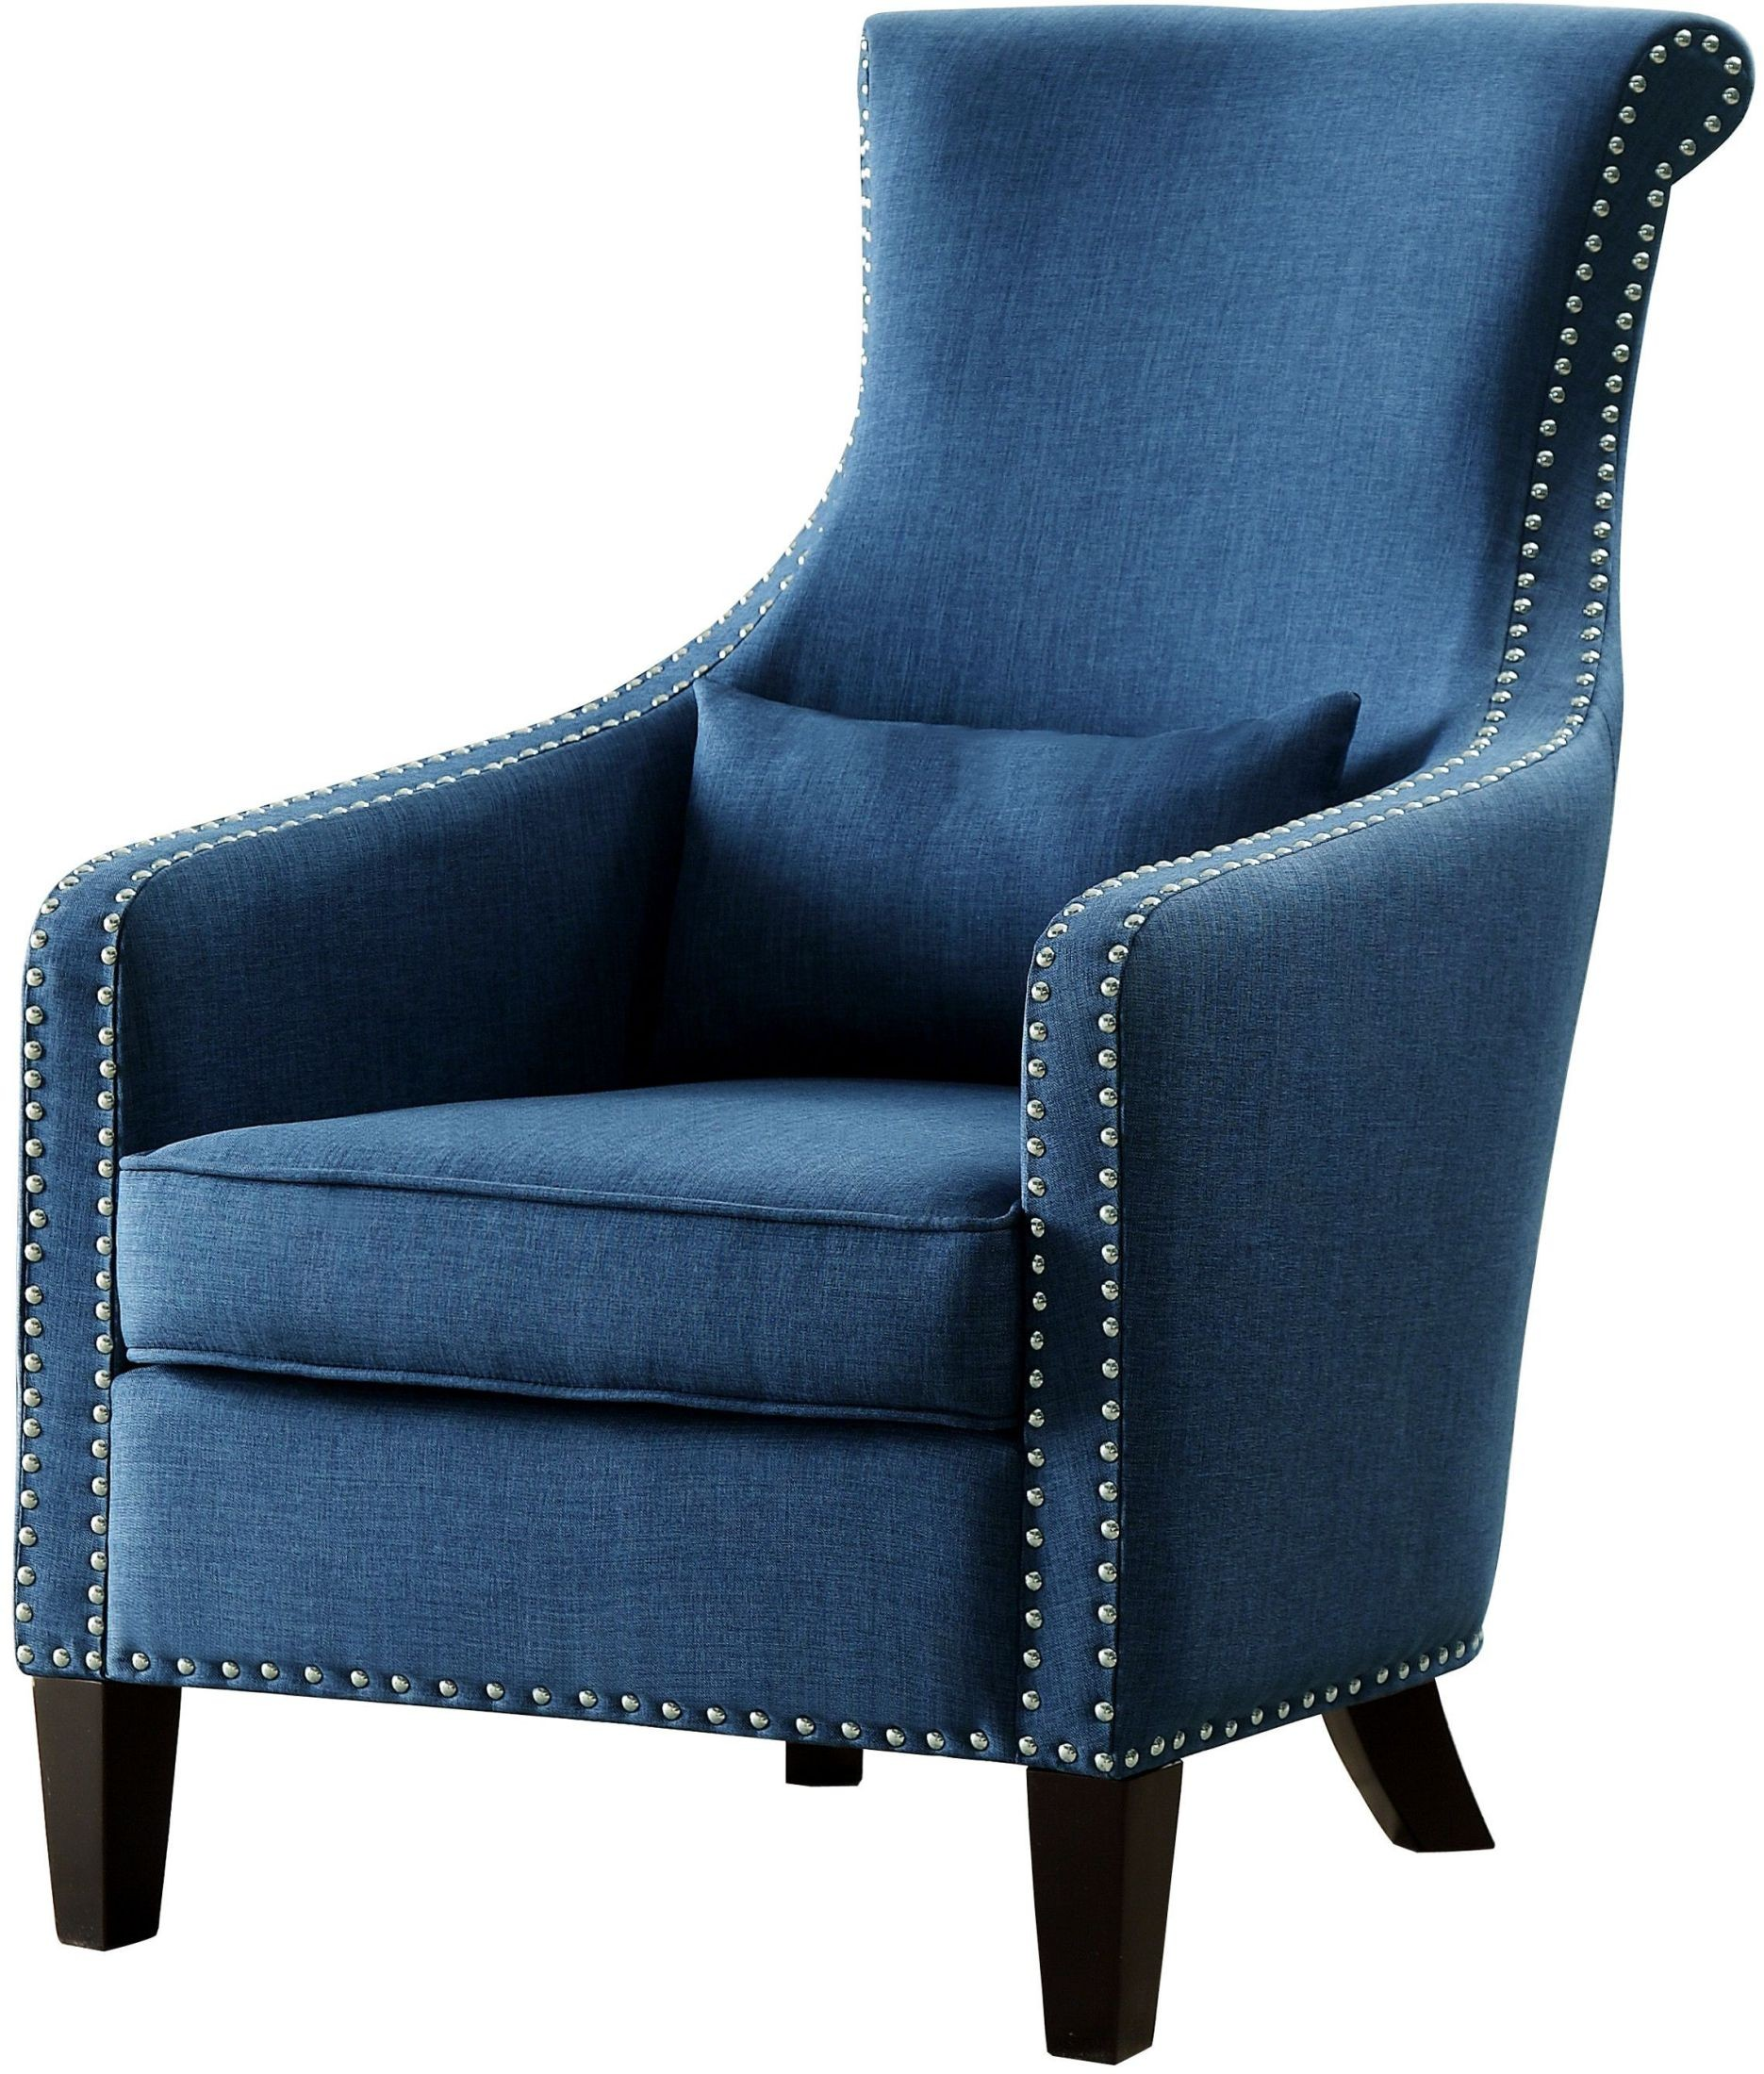 Arles Blue Accent Chair From Homelegance Coleman Furniture